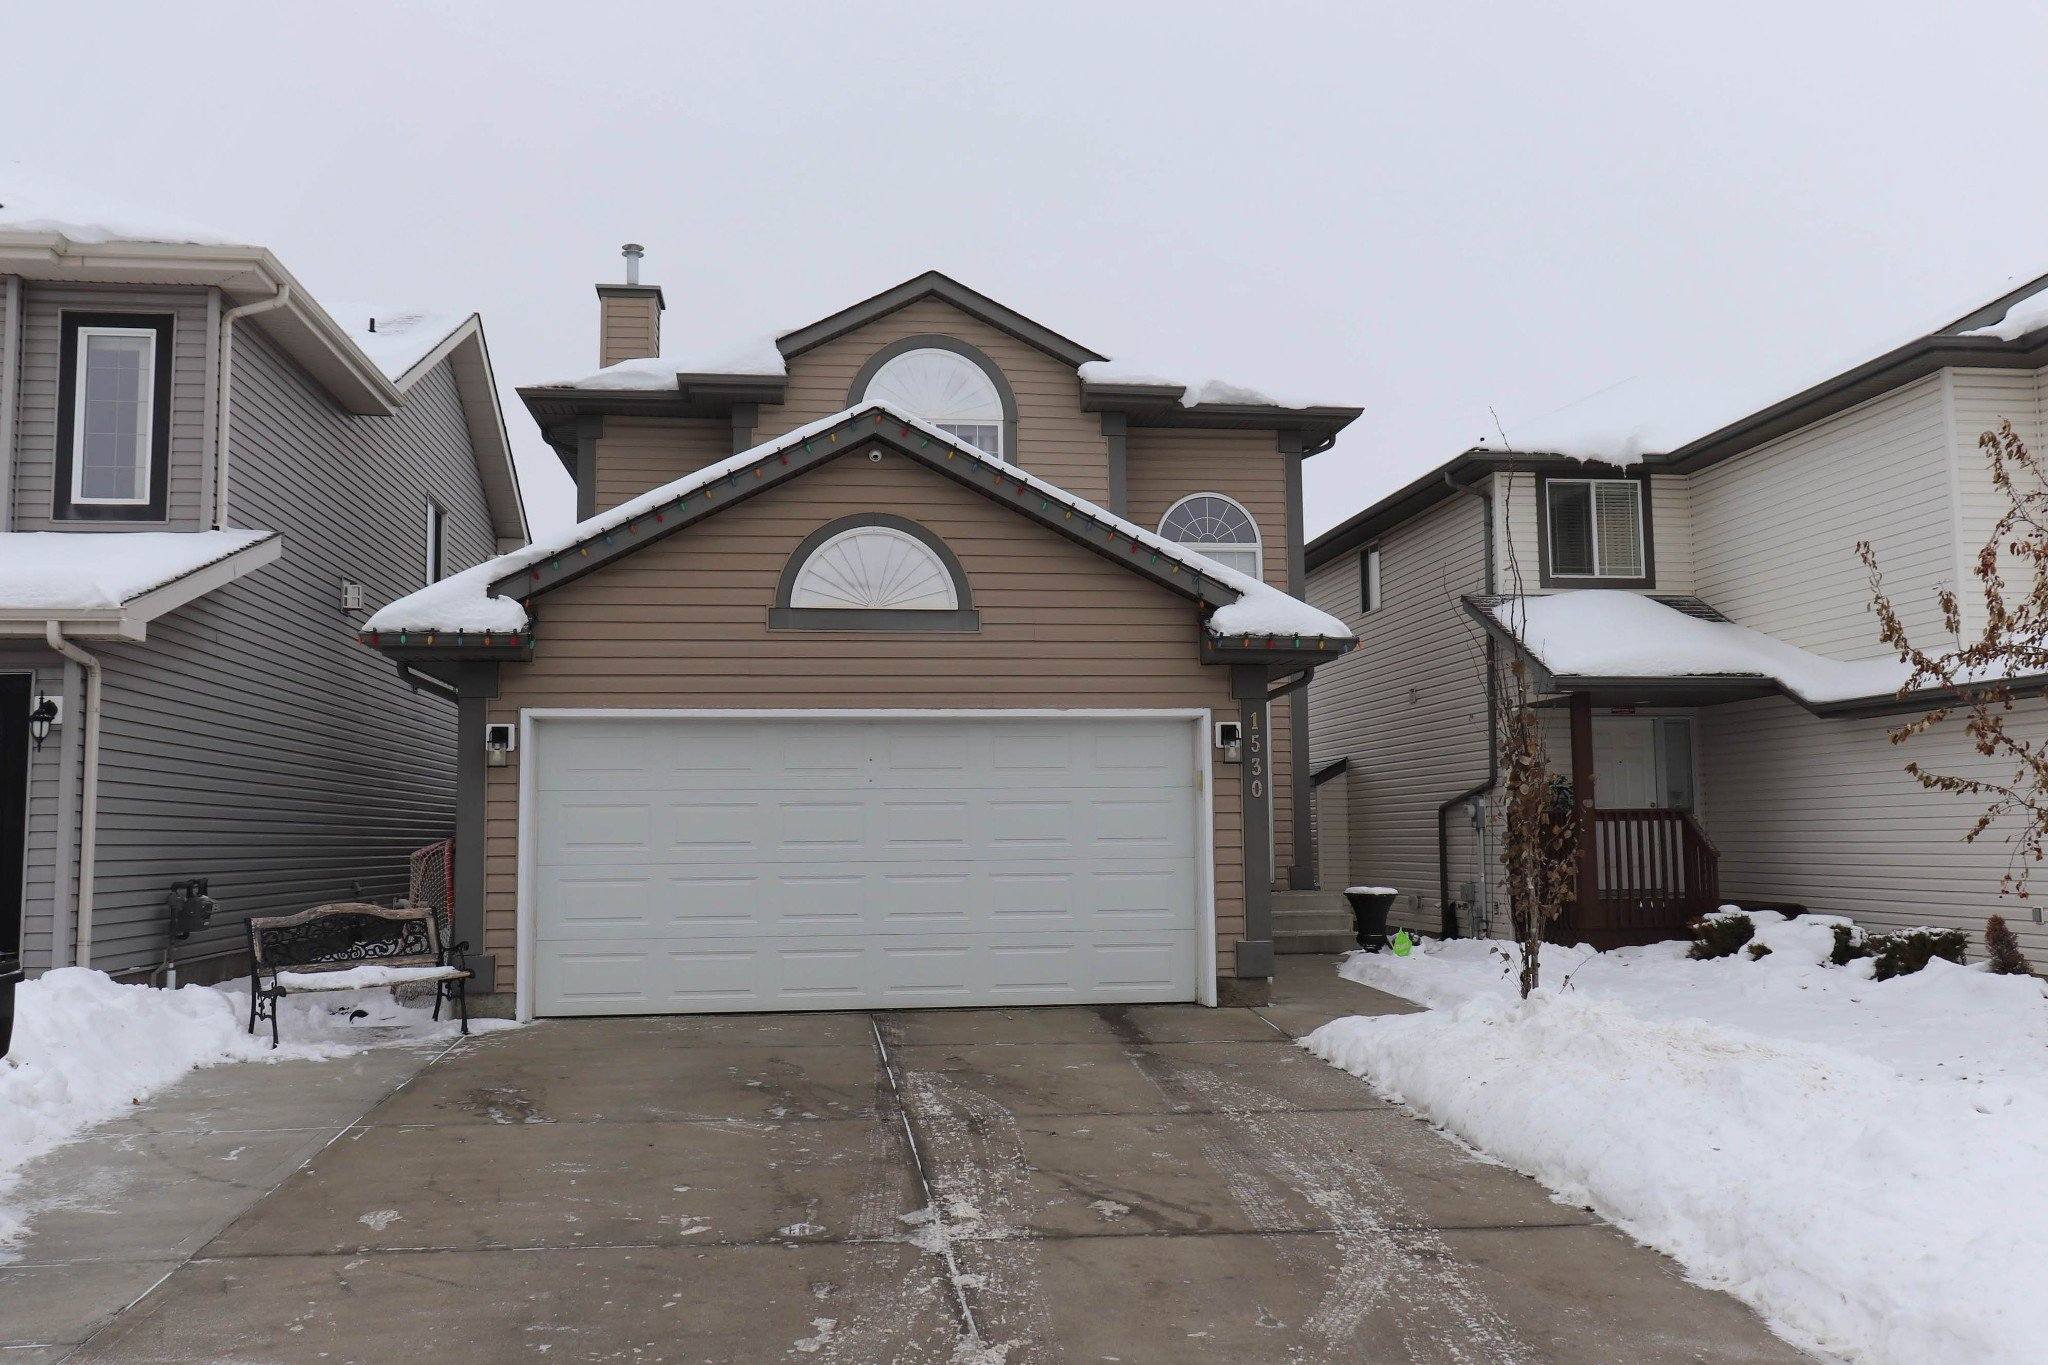 Main Photo: 1530 37b Ave in Edmonton: House for sale : MLS®# E4221429